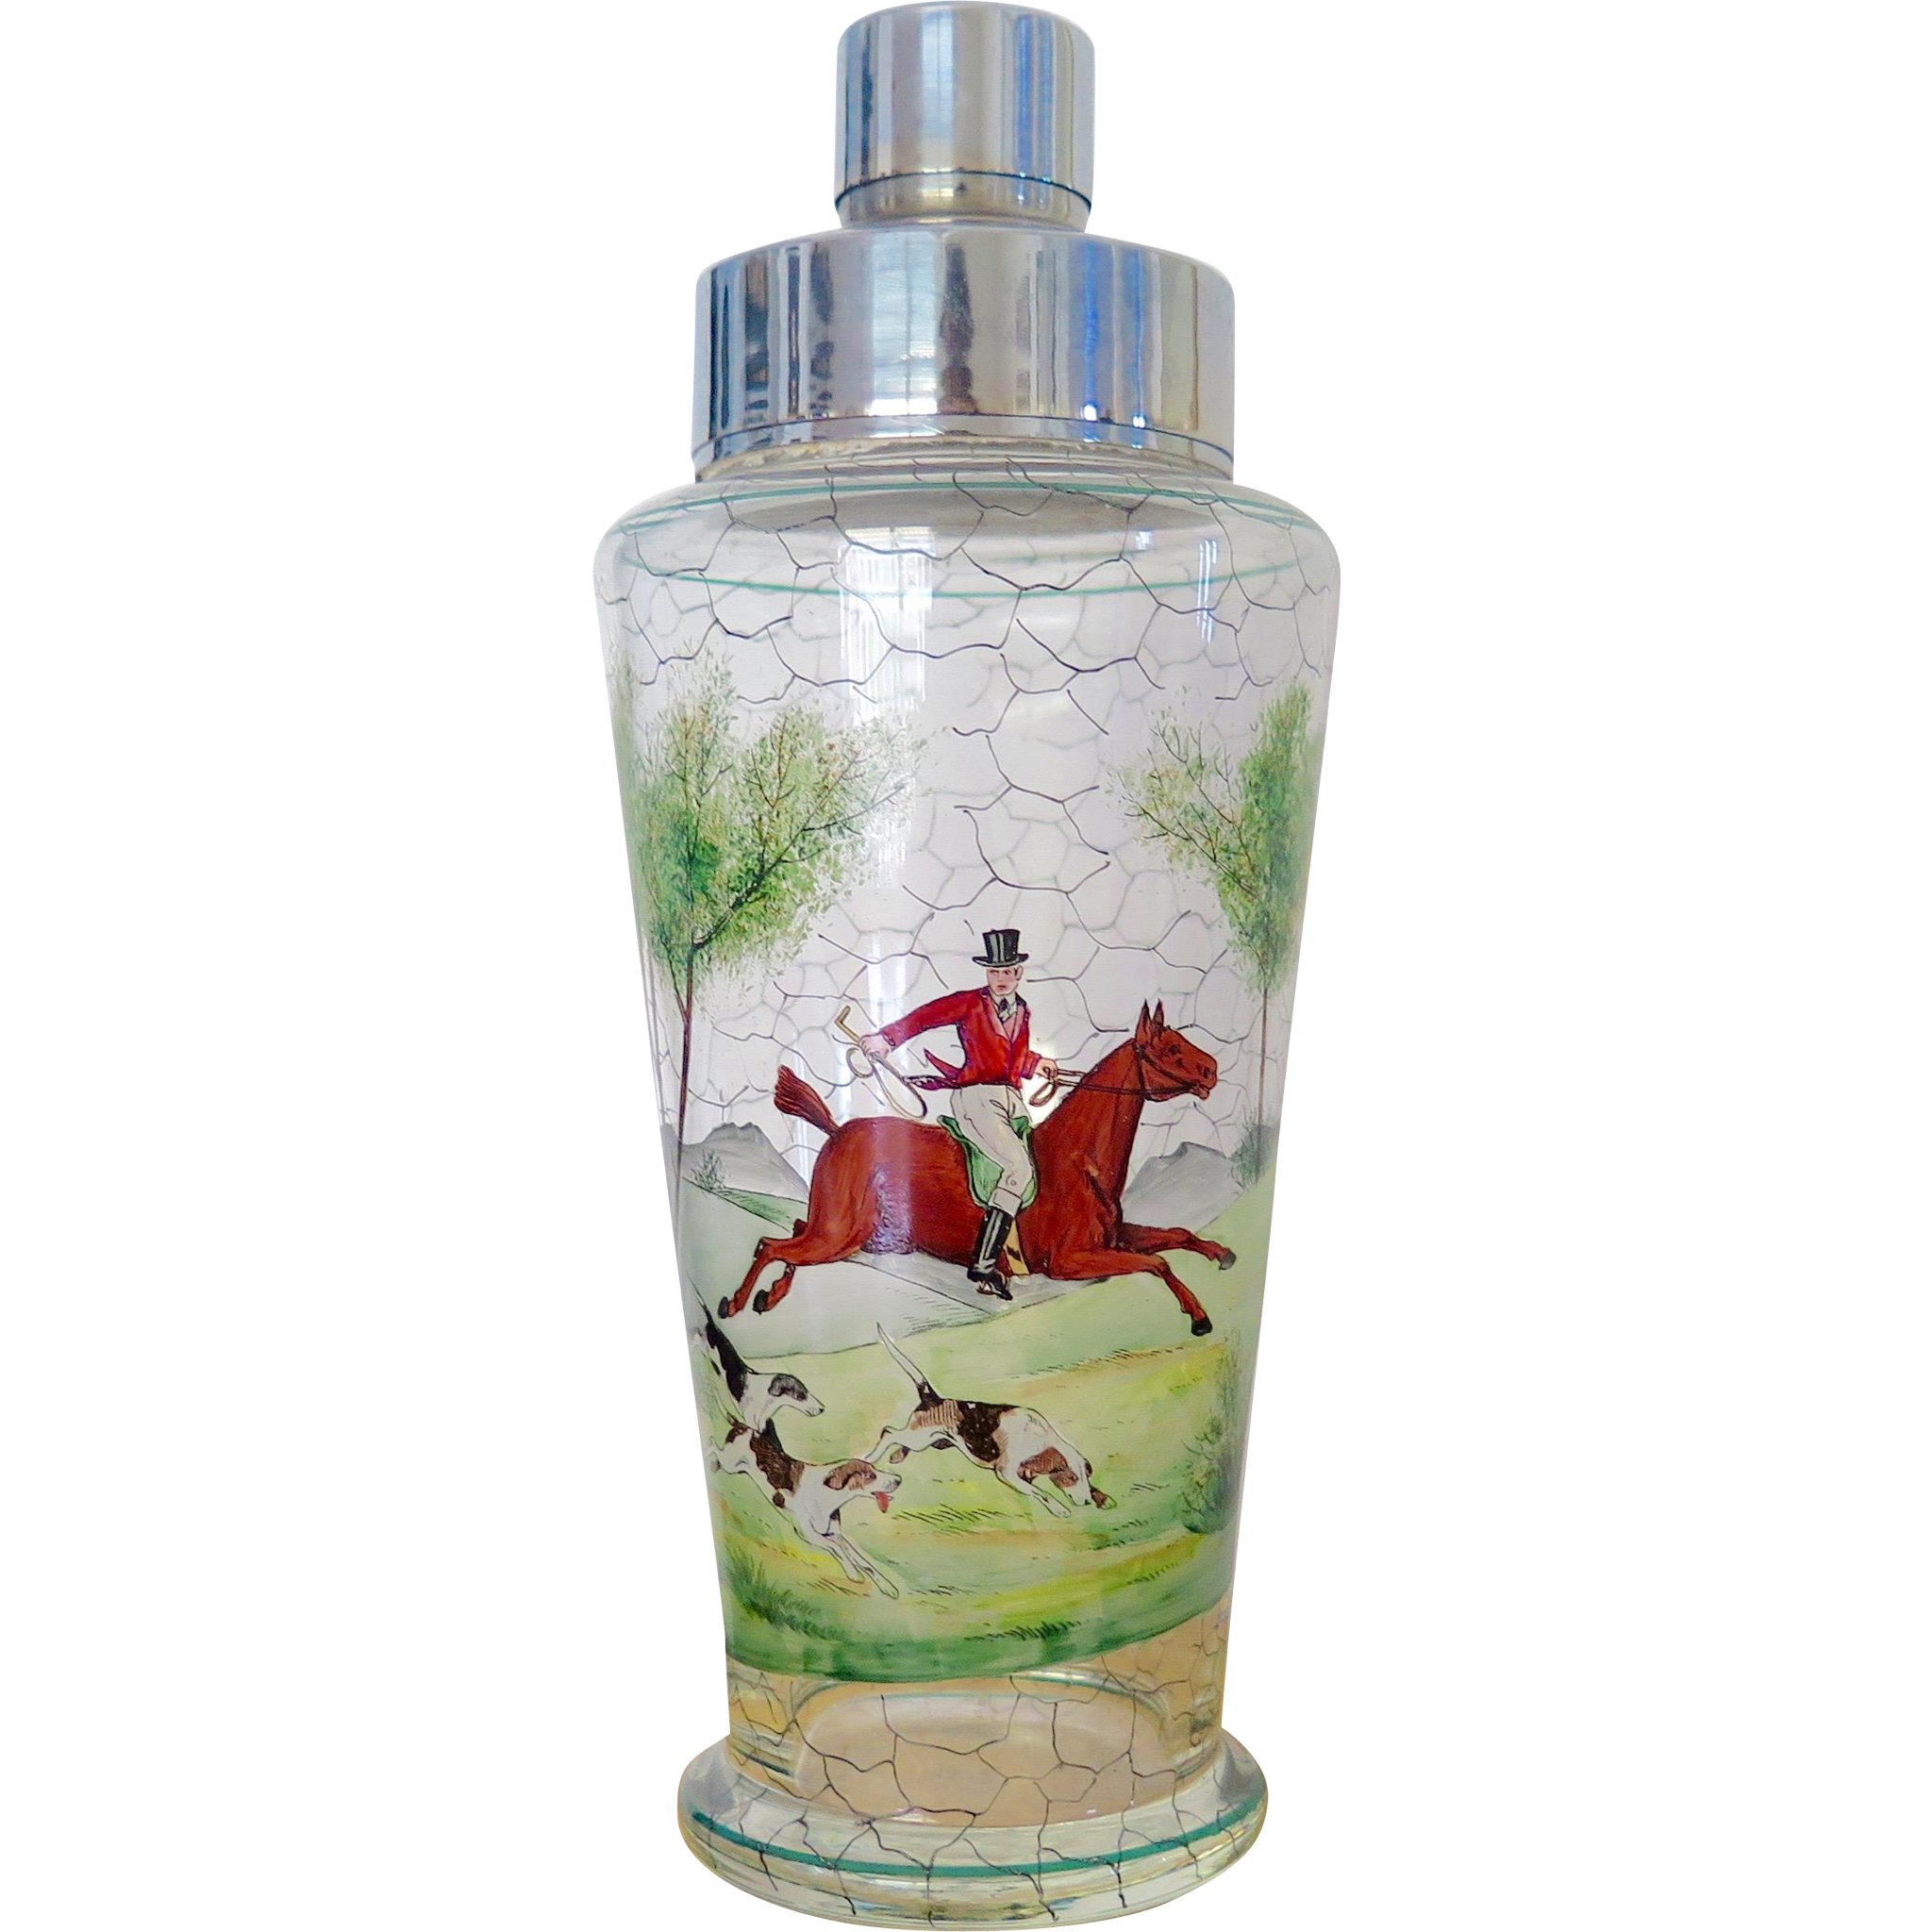 Cocktail shaker with hand painted hunting scenes with rider, horse and dogs, early-mid XX century